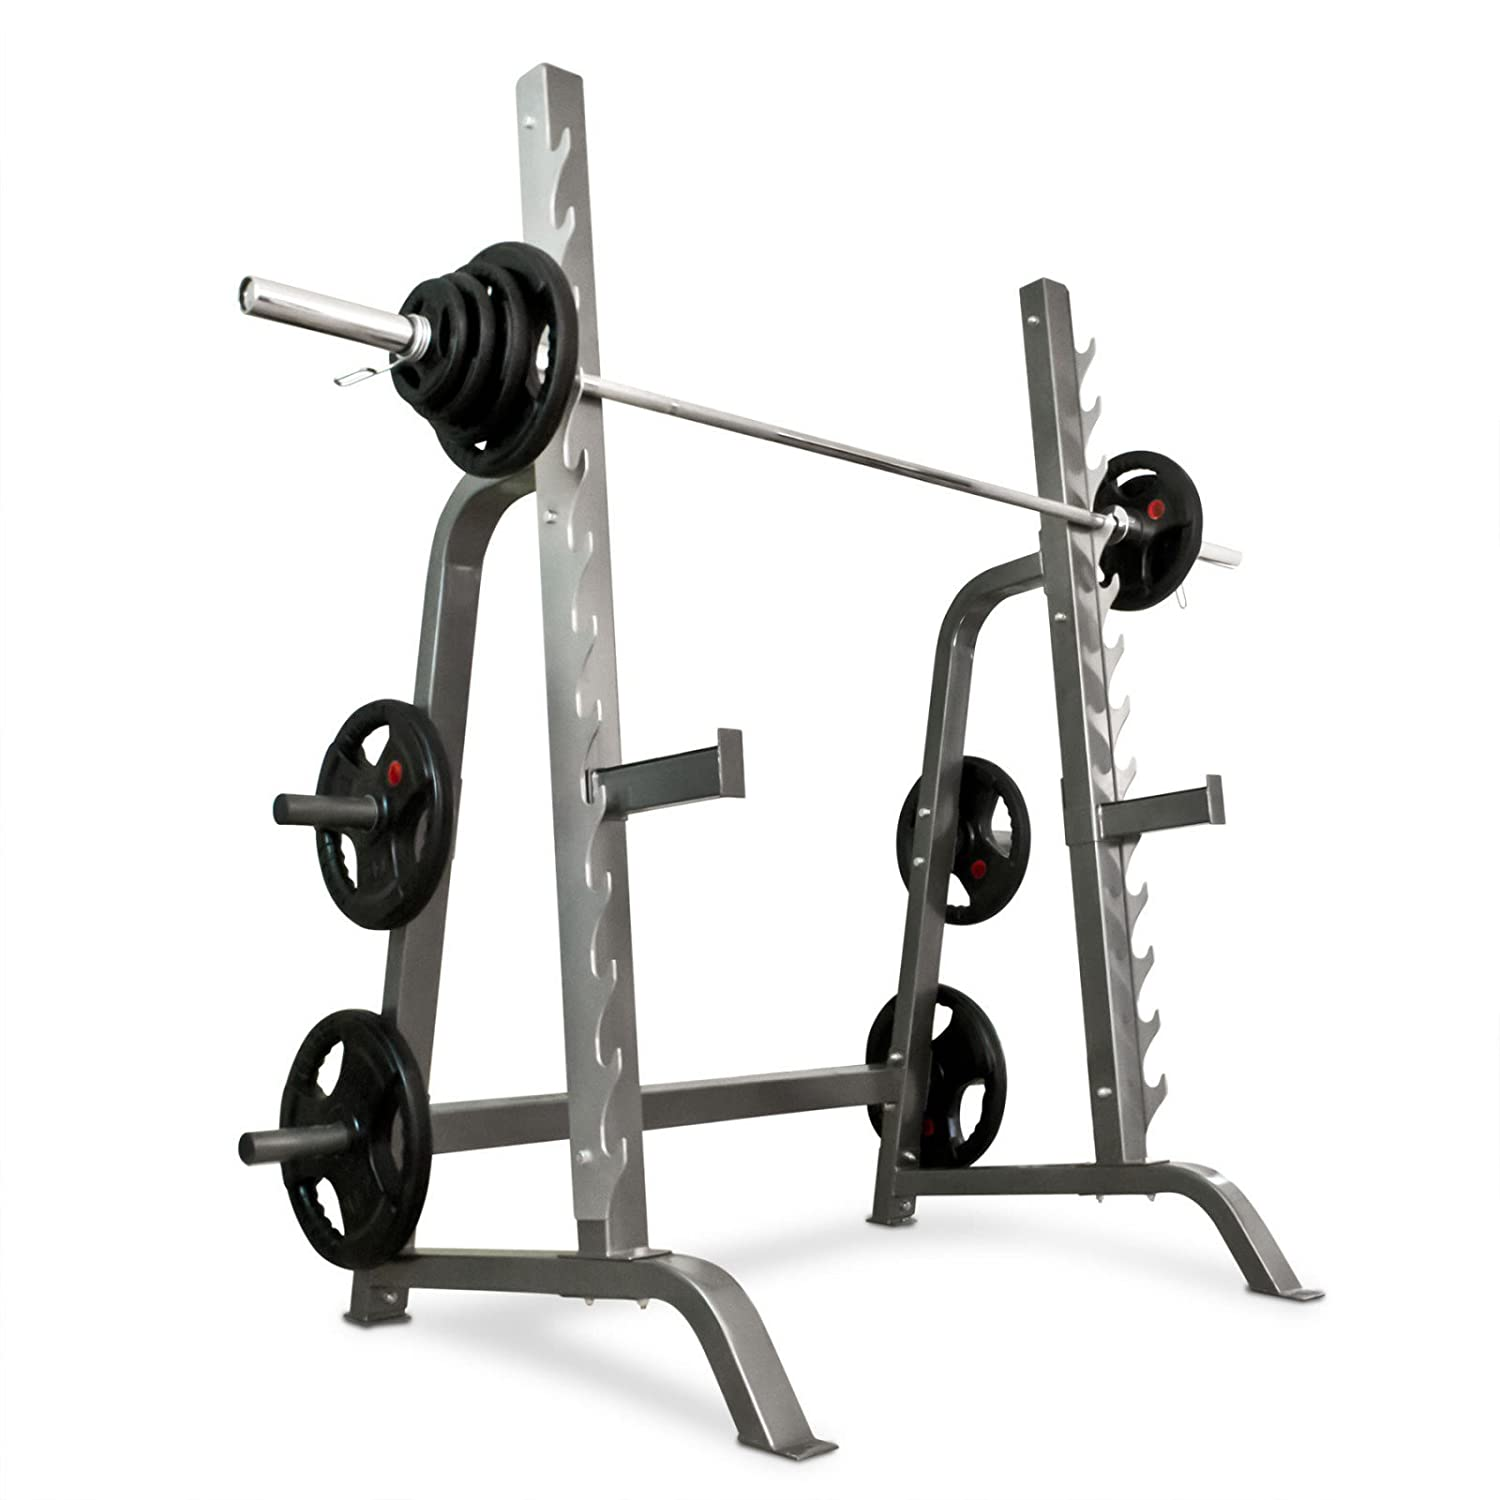 match s price image racks pro fitness machines guarantee half dsg jsp squat products dick productcard gear smith rack at product